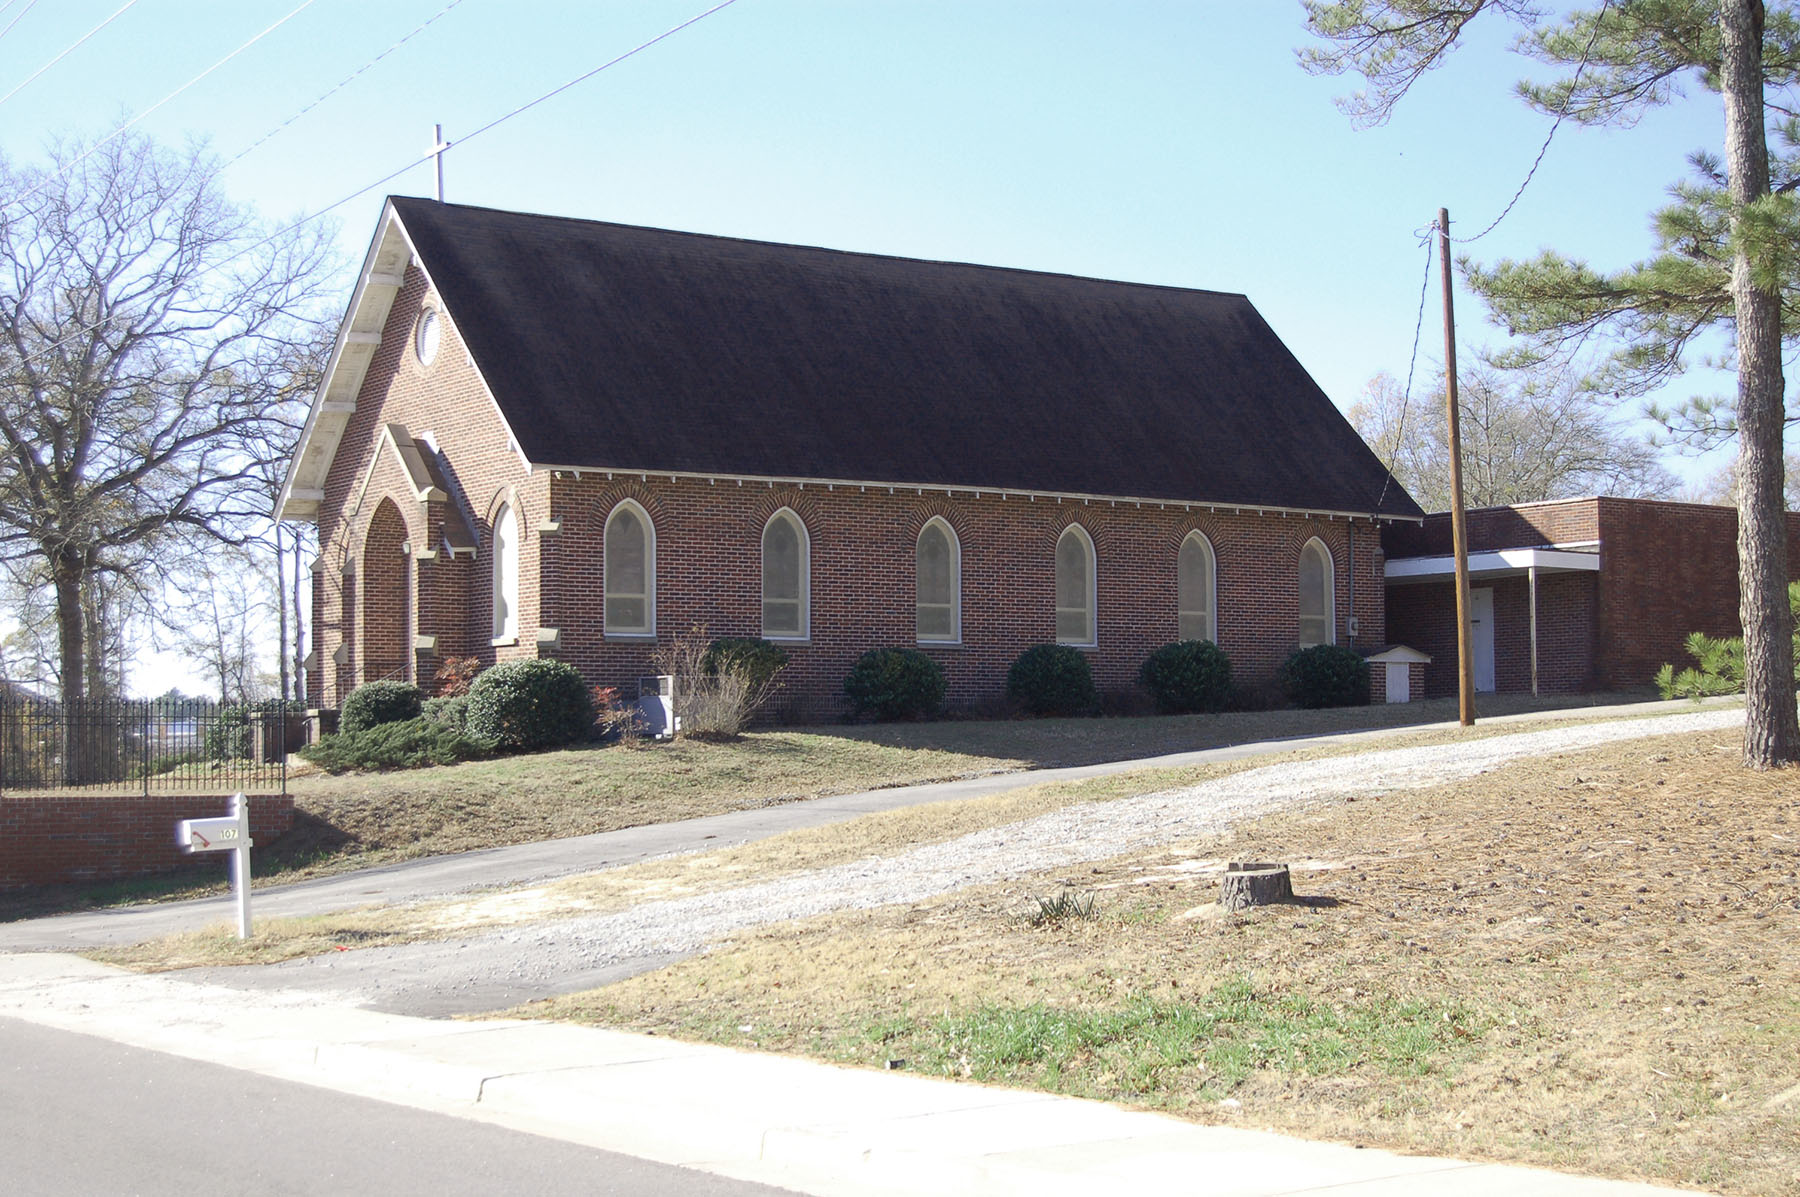 St Marks Lutheran Church located on Main Street.  Church Organized in 1885.  Photo by Jim McLean.